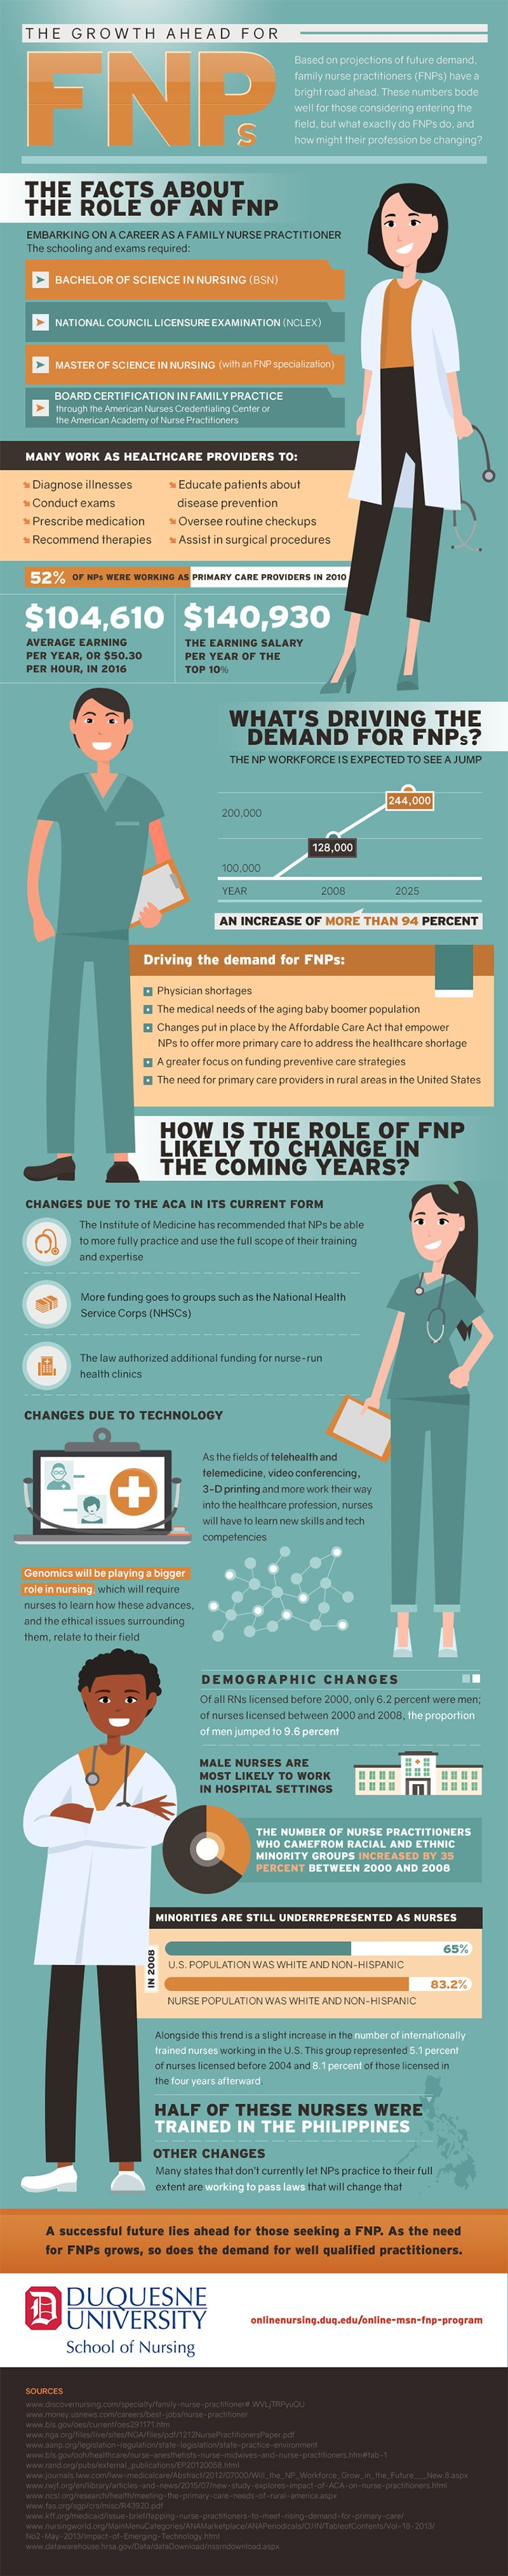 The Growth Ahead for FNPs Infographic